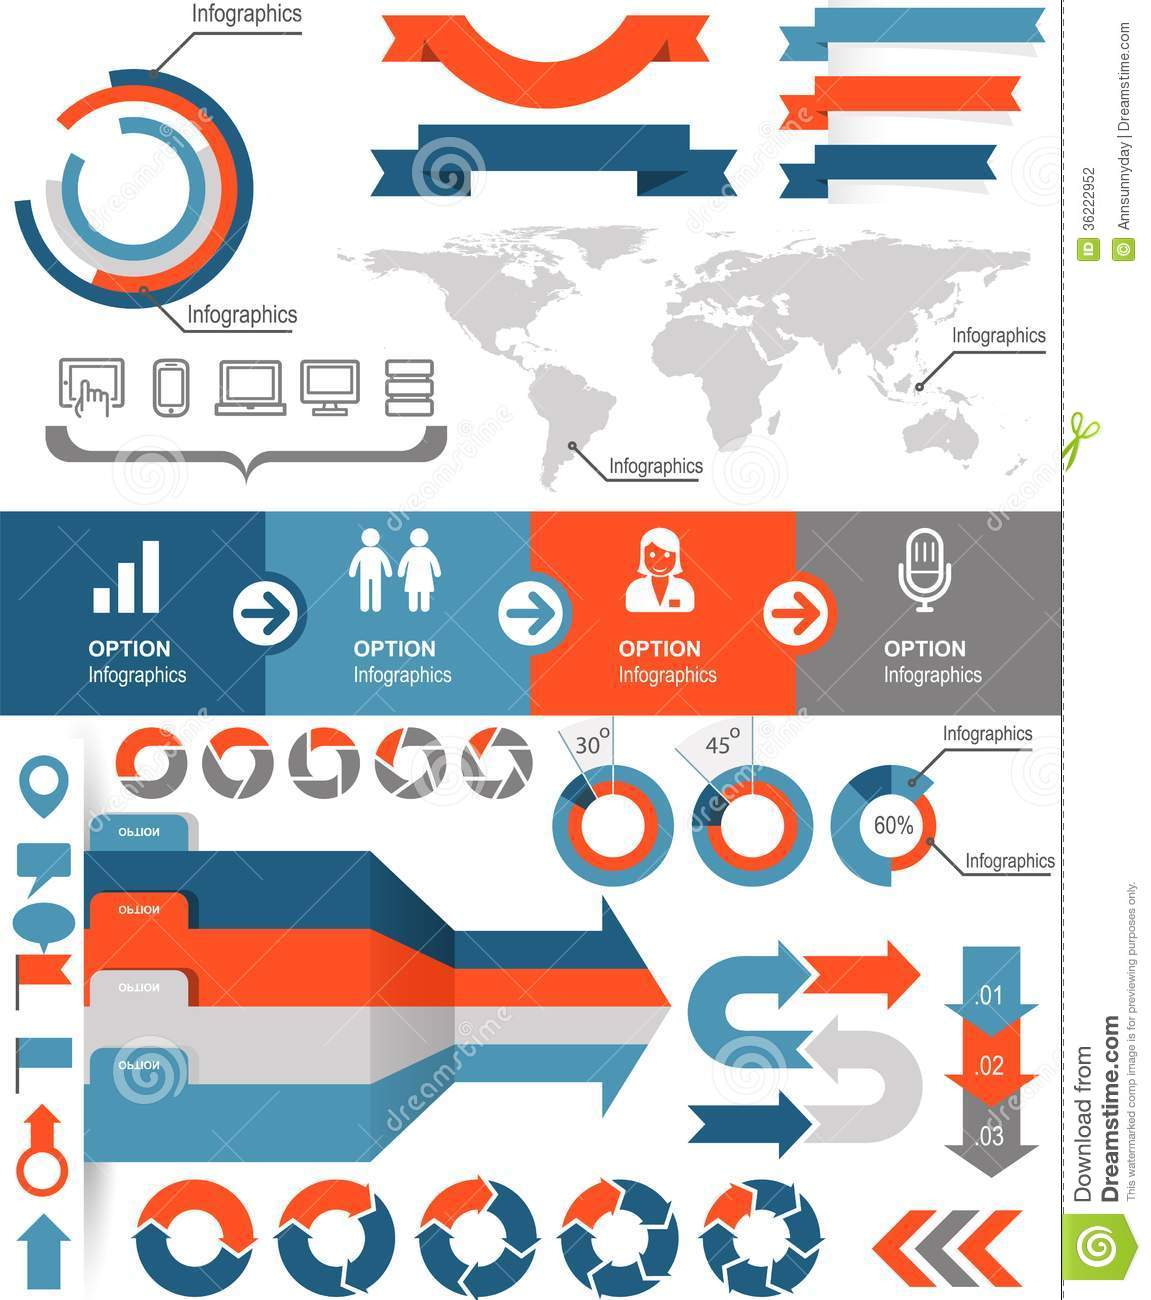 Infographics Icons Stock Photography - Image: 36222952